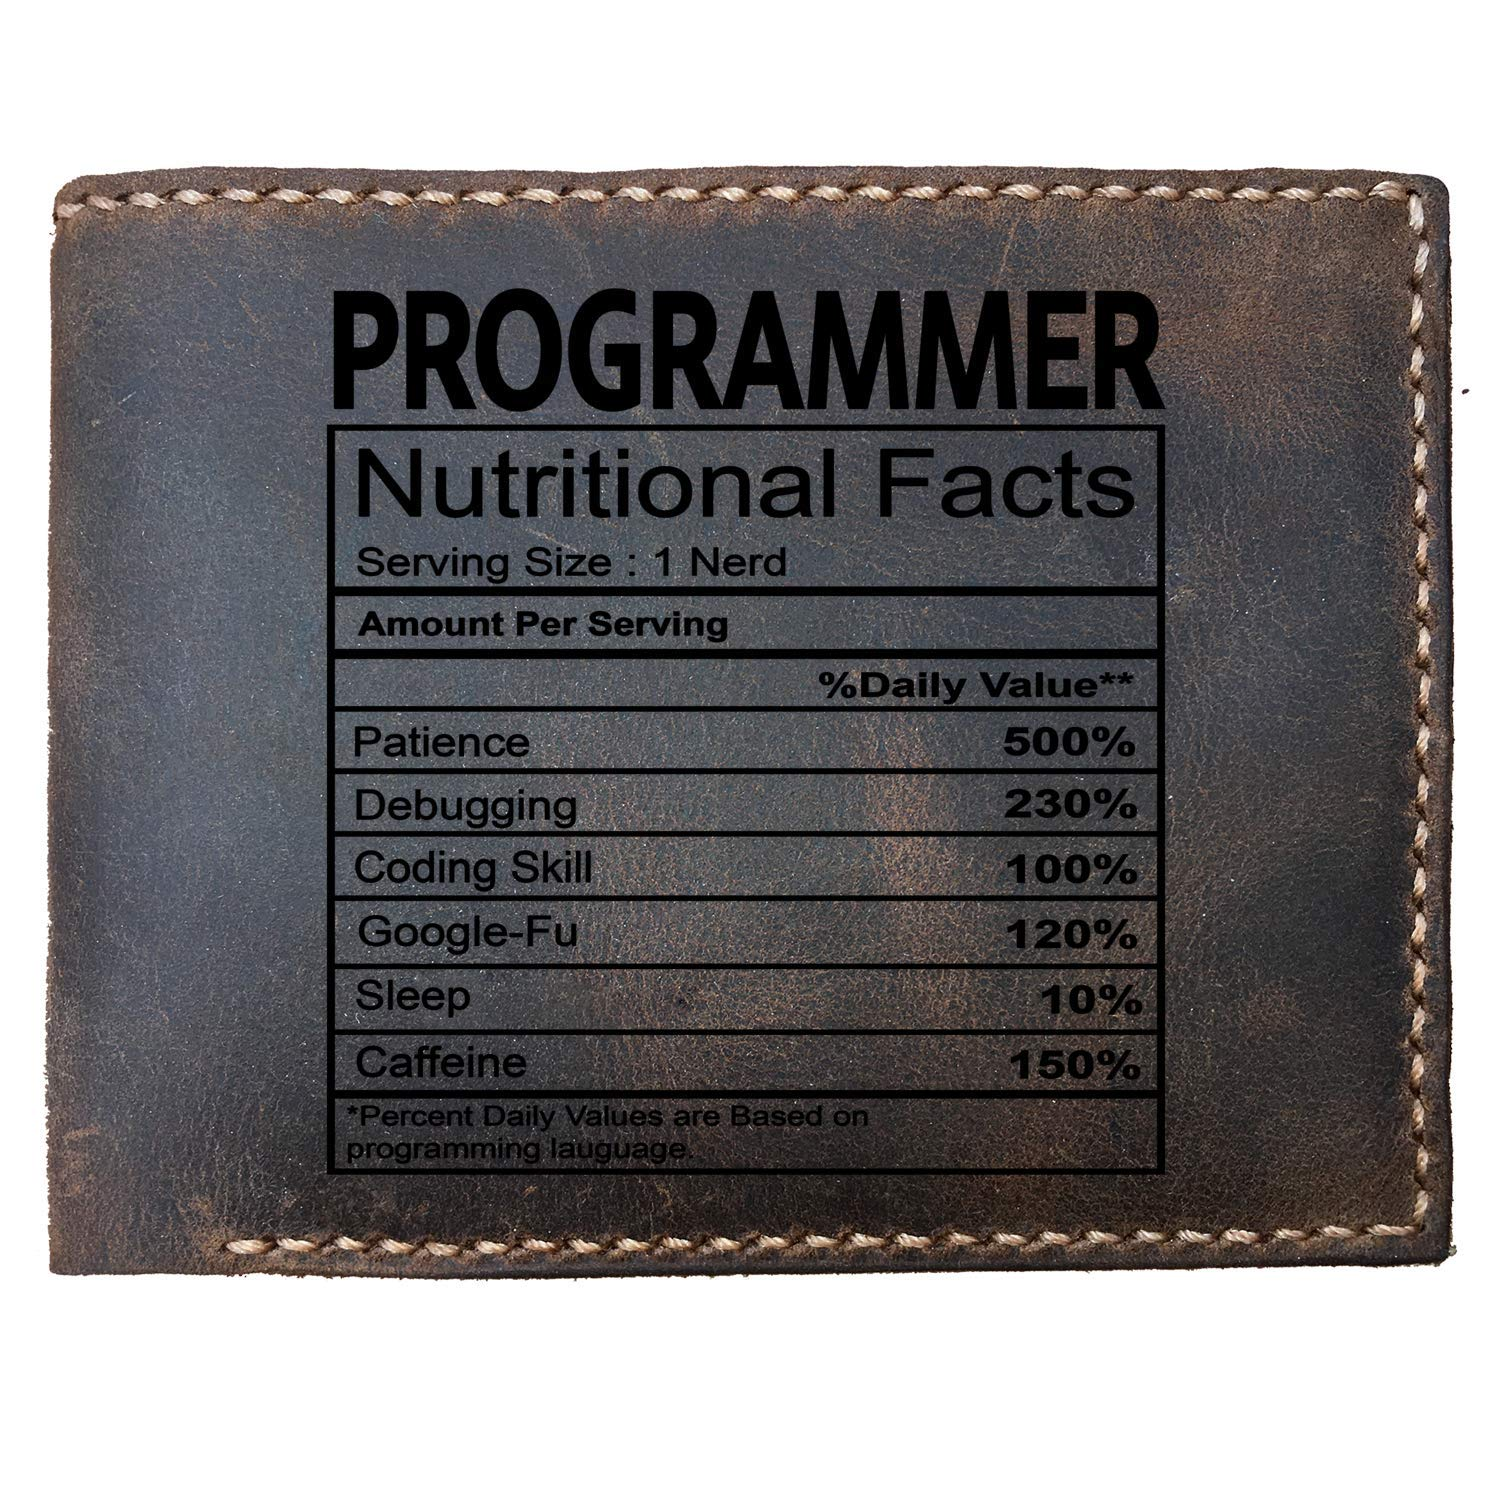 Makes a Great Gift Perfect Custom Laser Engraved Leather Bifold Wallet for Men for Programmer Max/&Mori Programmer Nutrition Facts